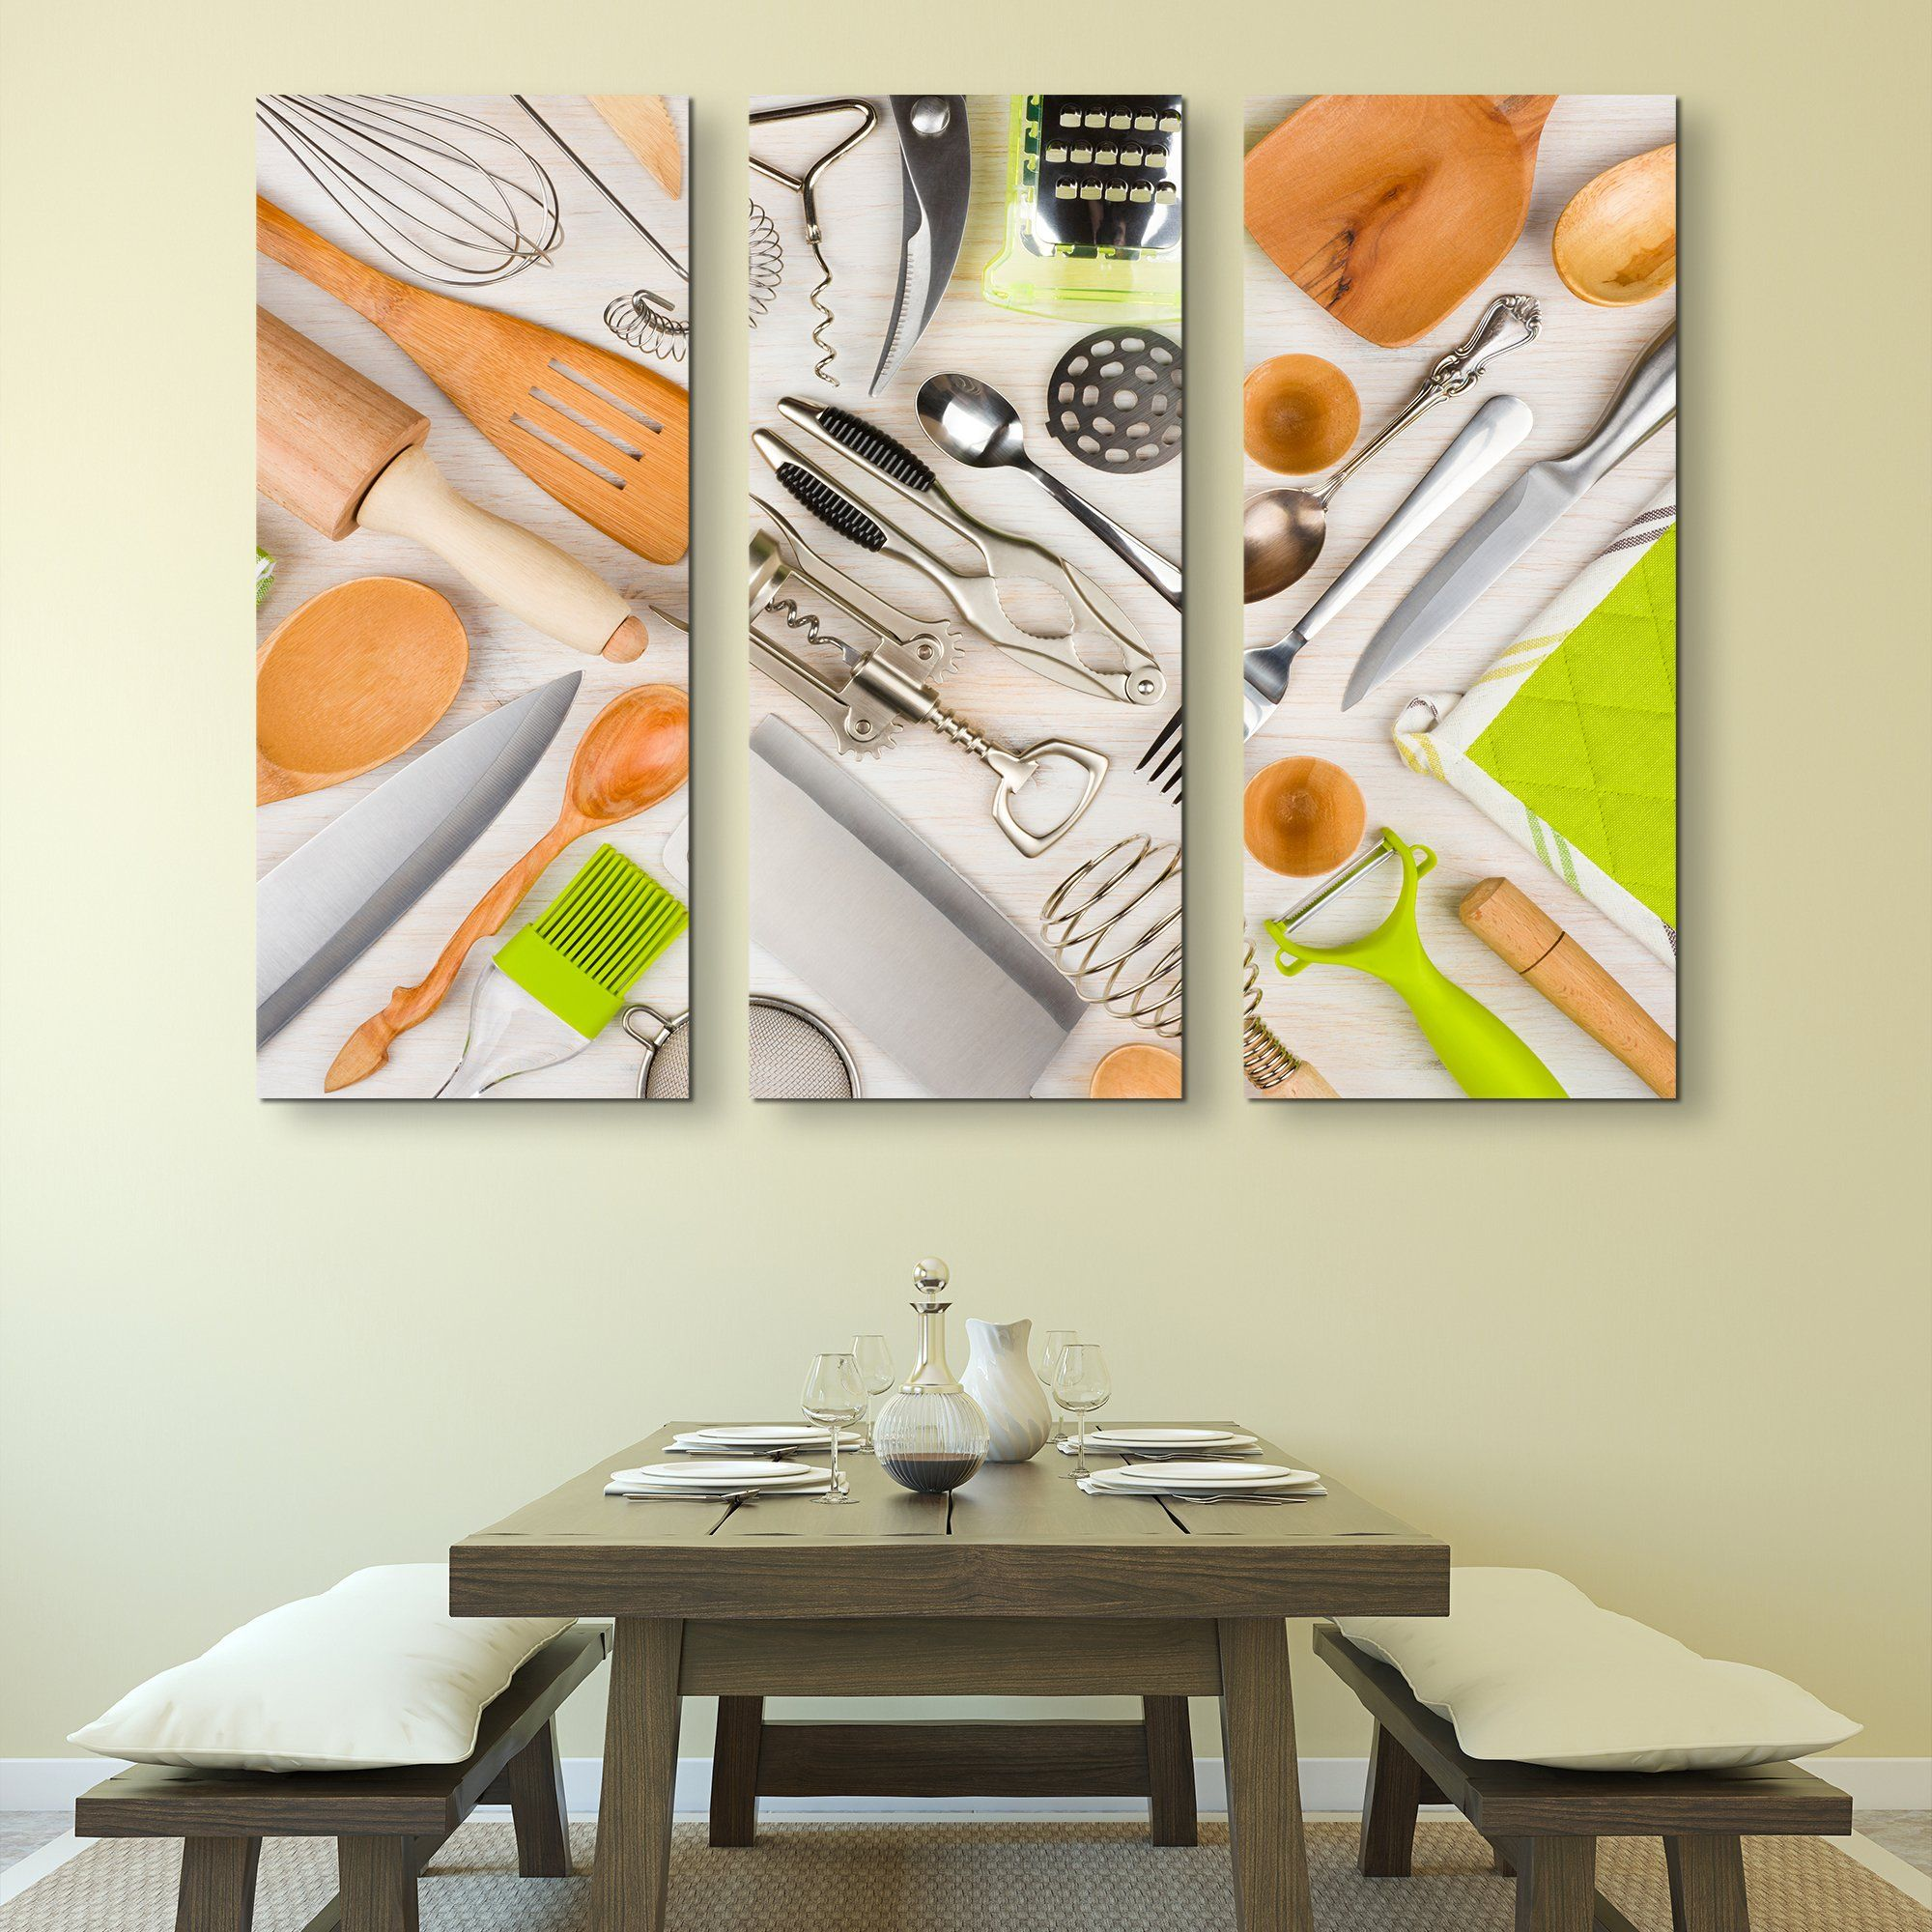 3 piece Kitchen Utensils wall art